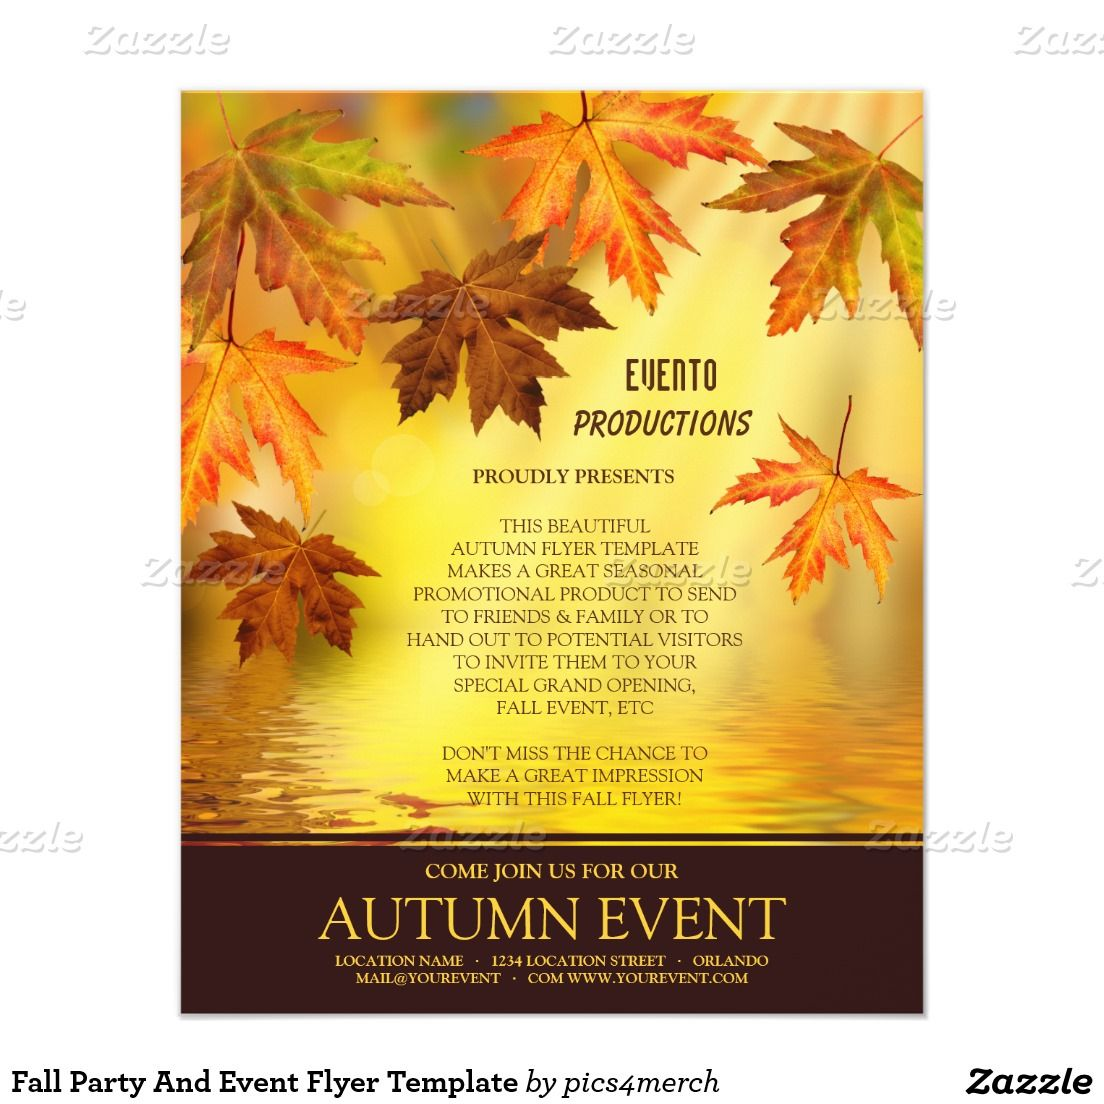 fall bazaar flyer template google search fall bazaar fall bazaar flyer template google search